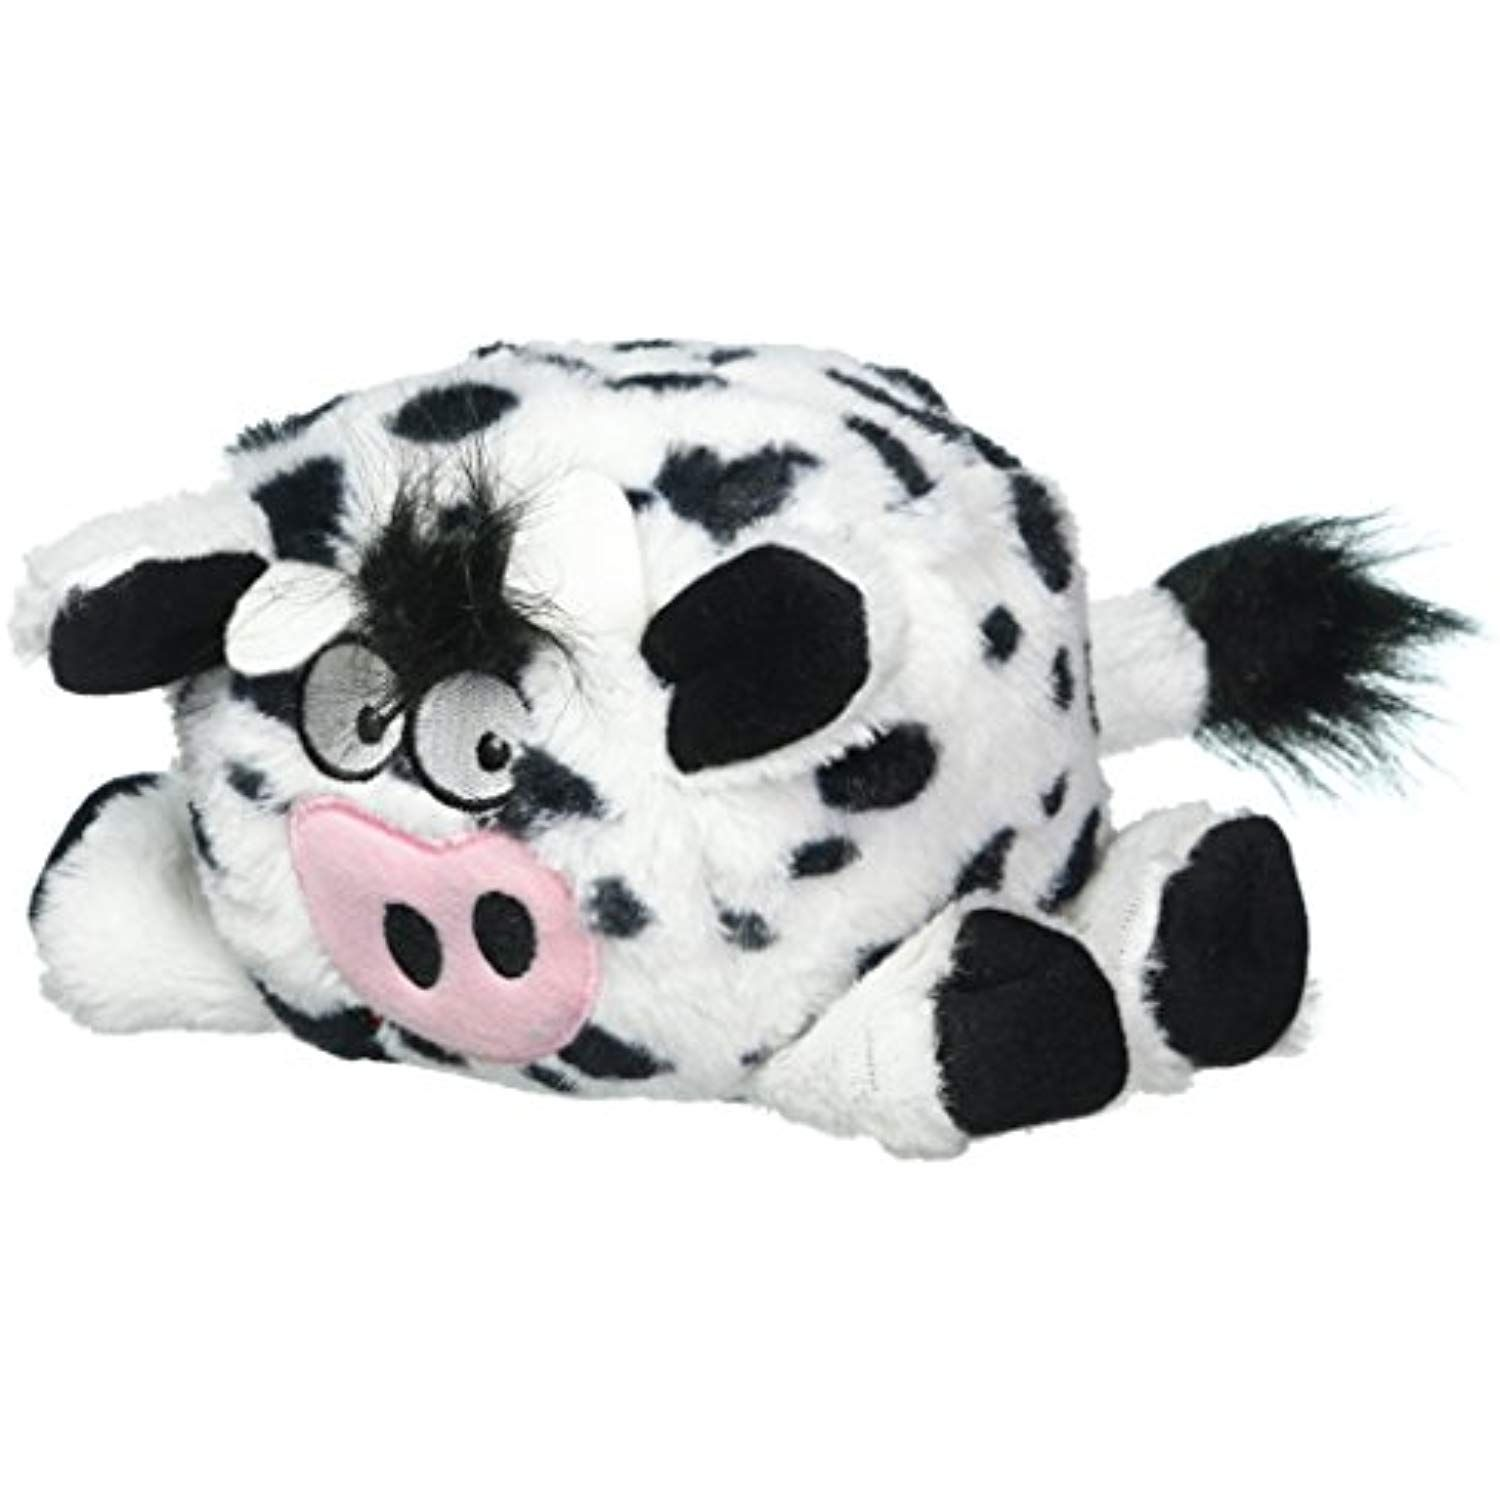 Trustypup Tough N Fun Squares Cow Durable Dog Toy Read More At